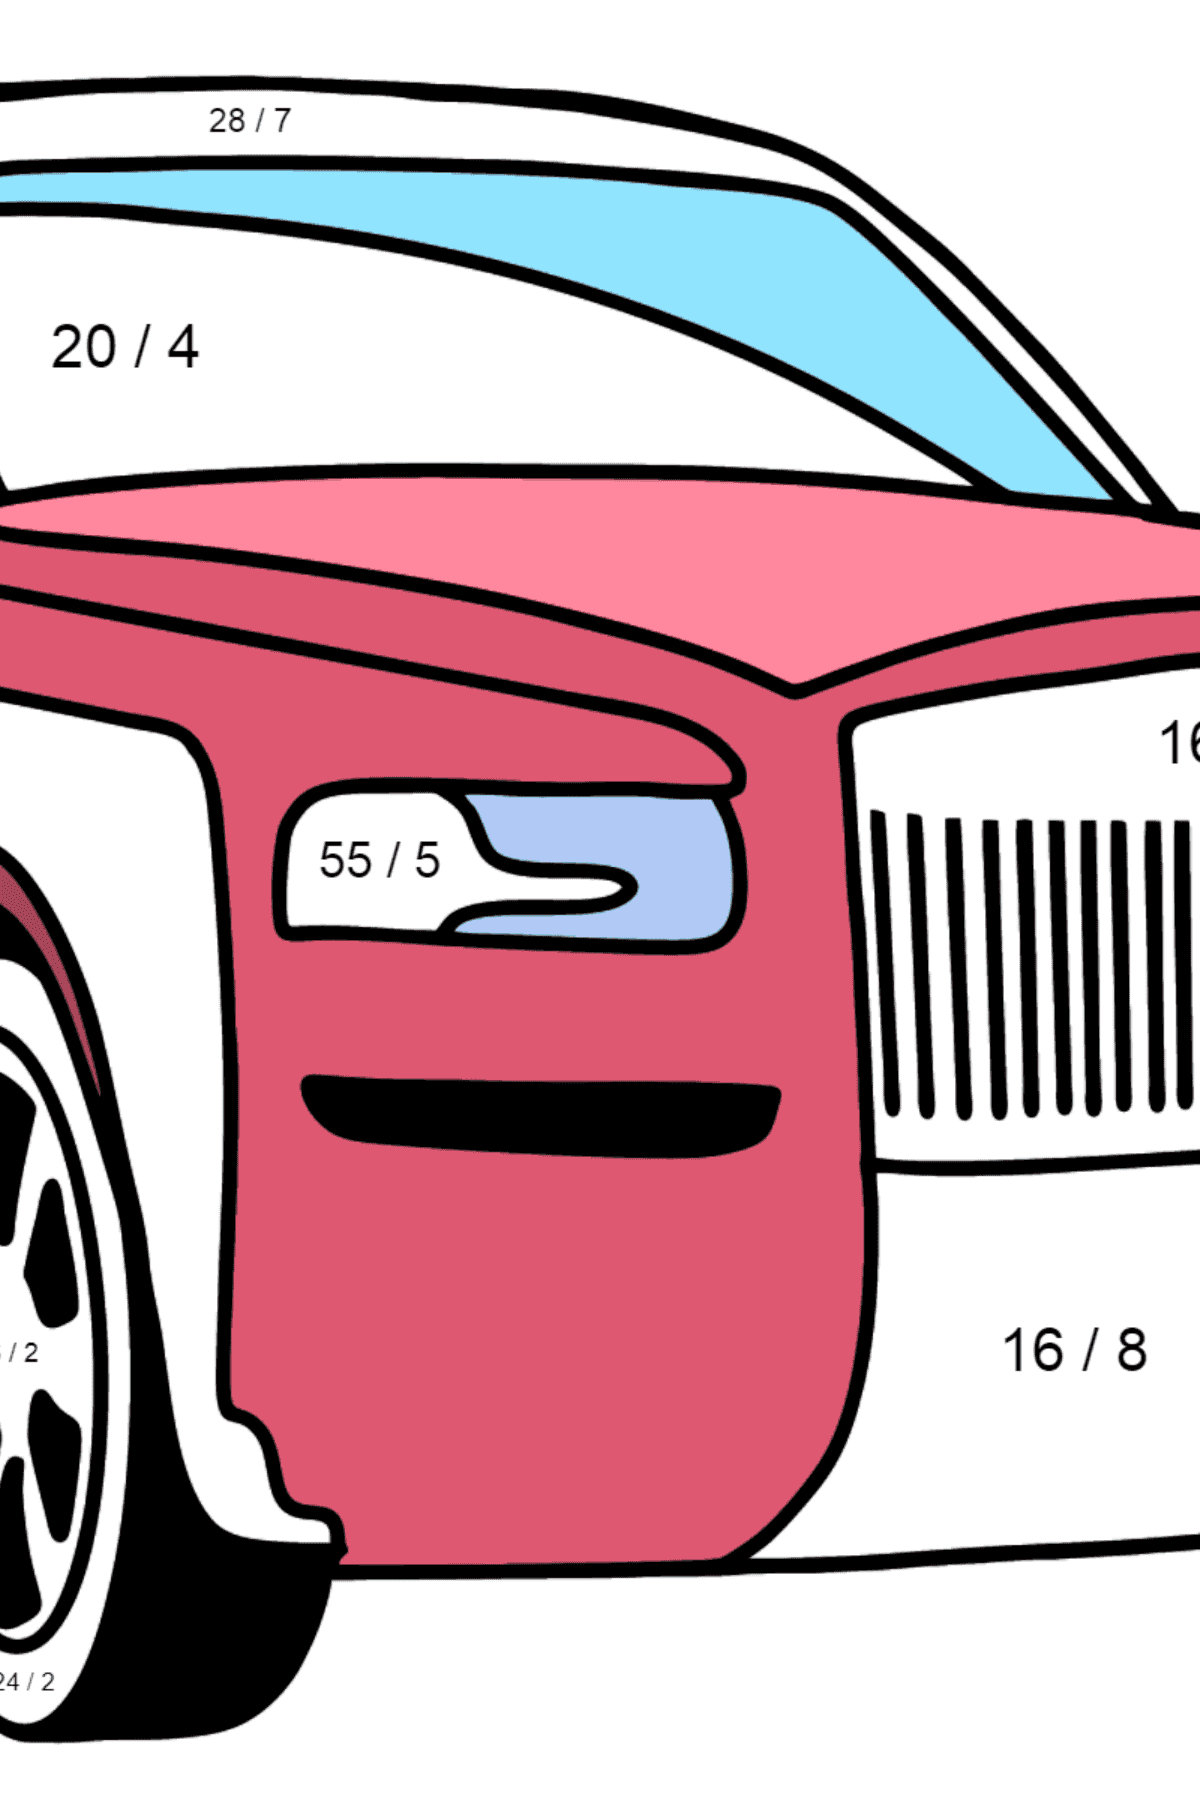 Rolls Royce Cullinan Car coloring page - Math Coloring - Division for Kids